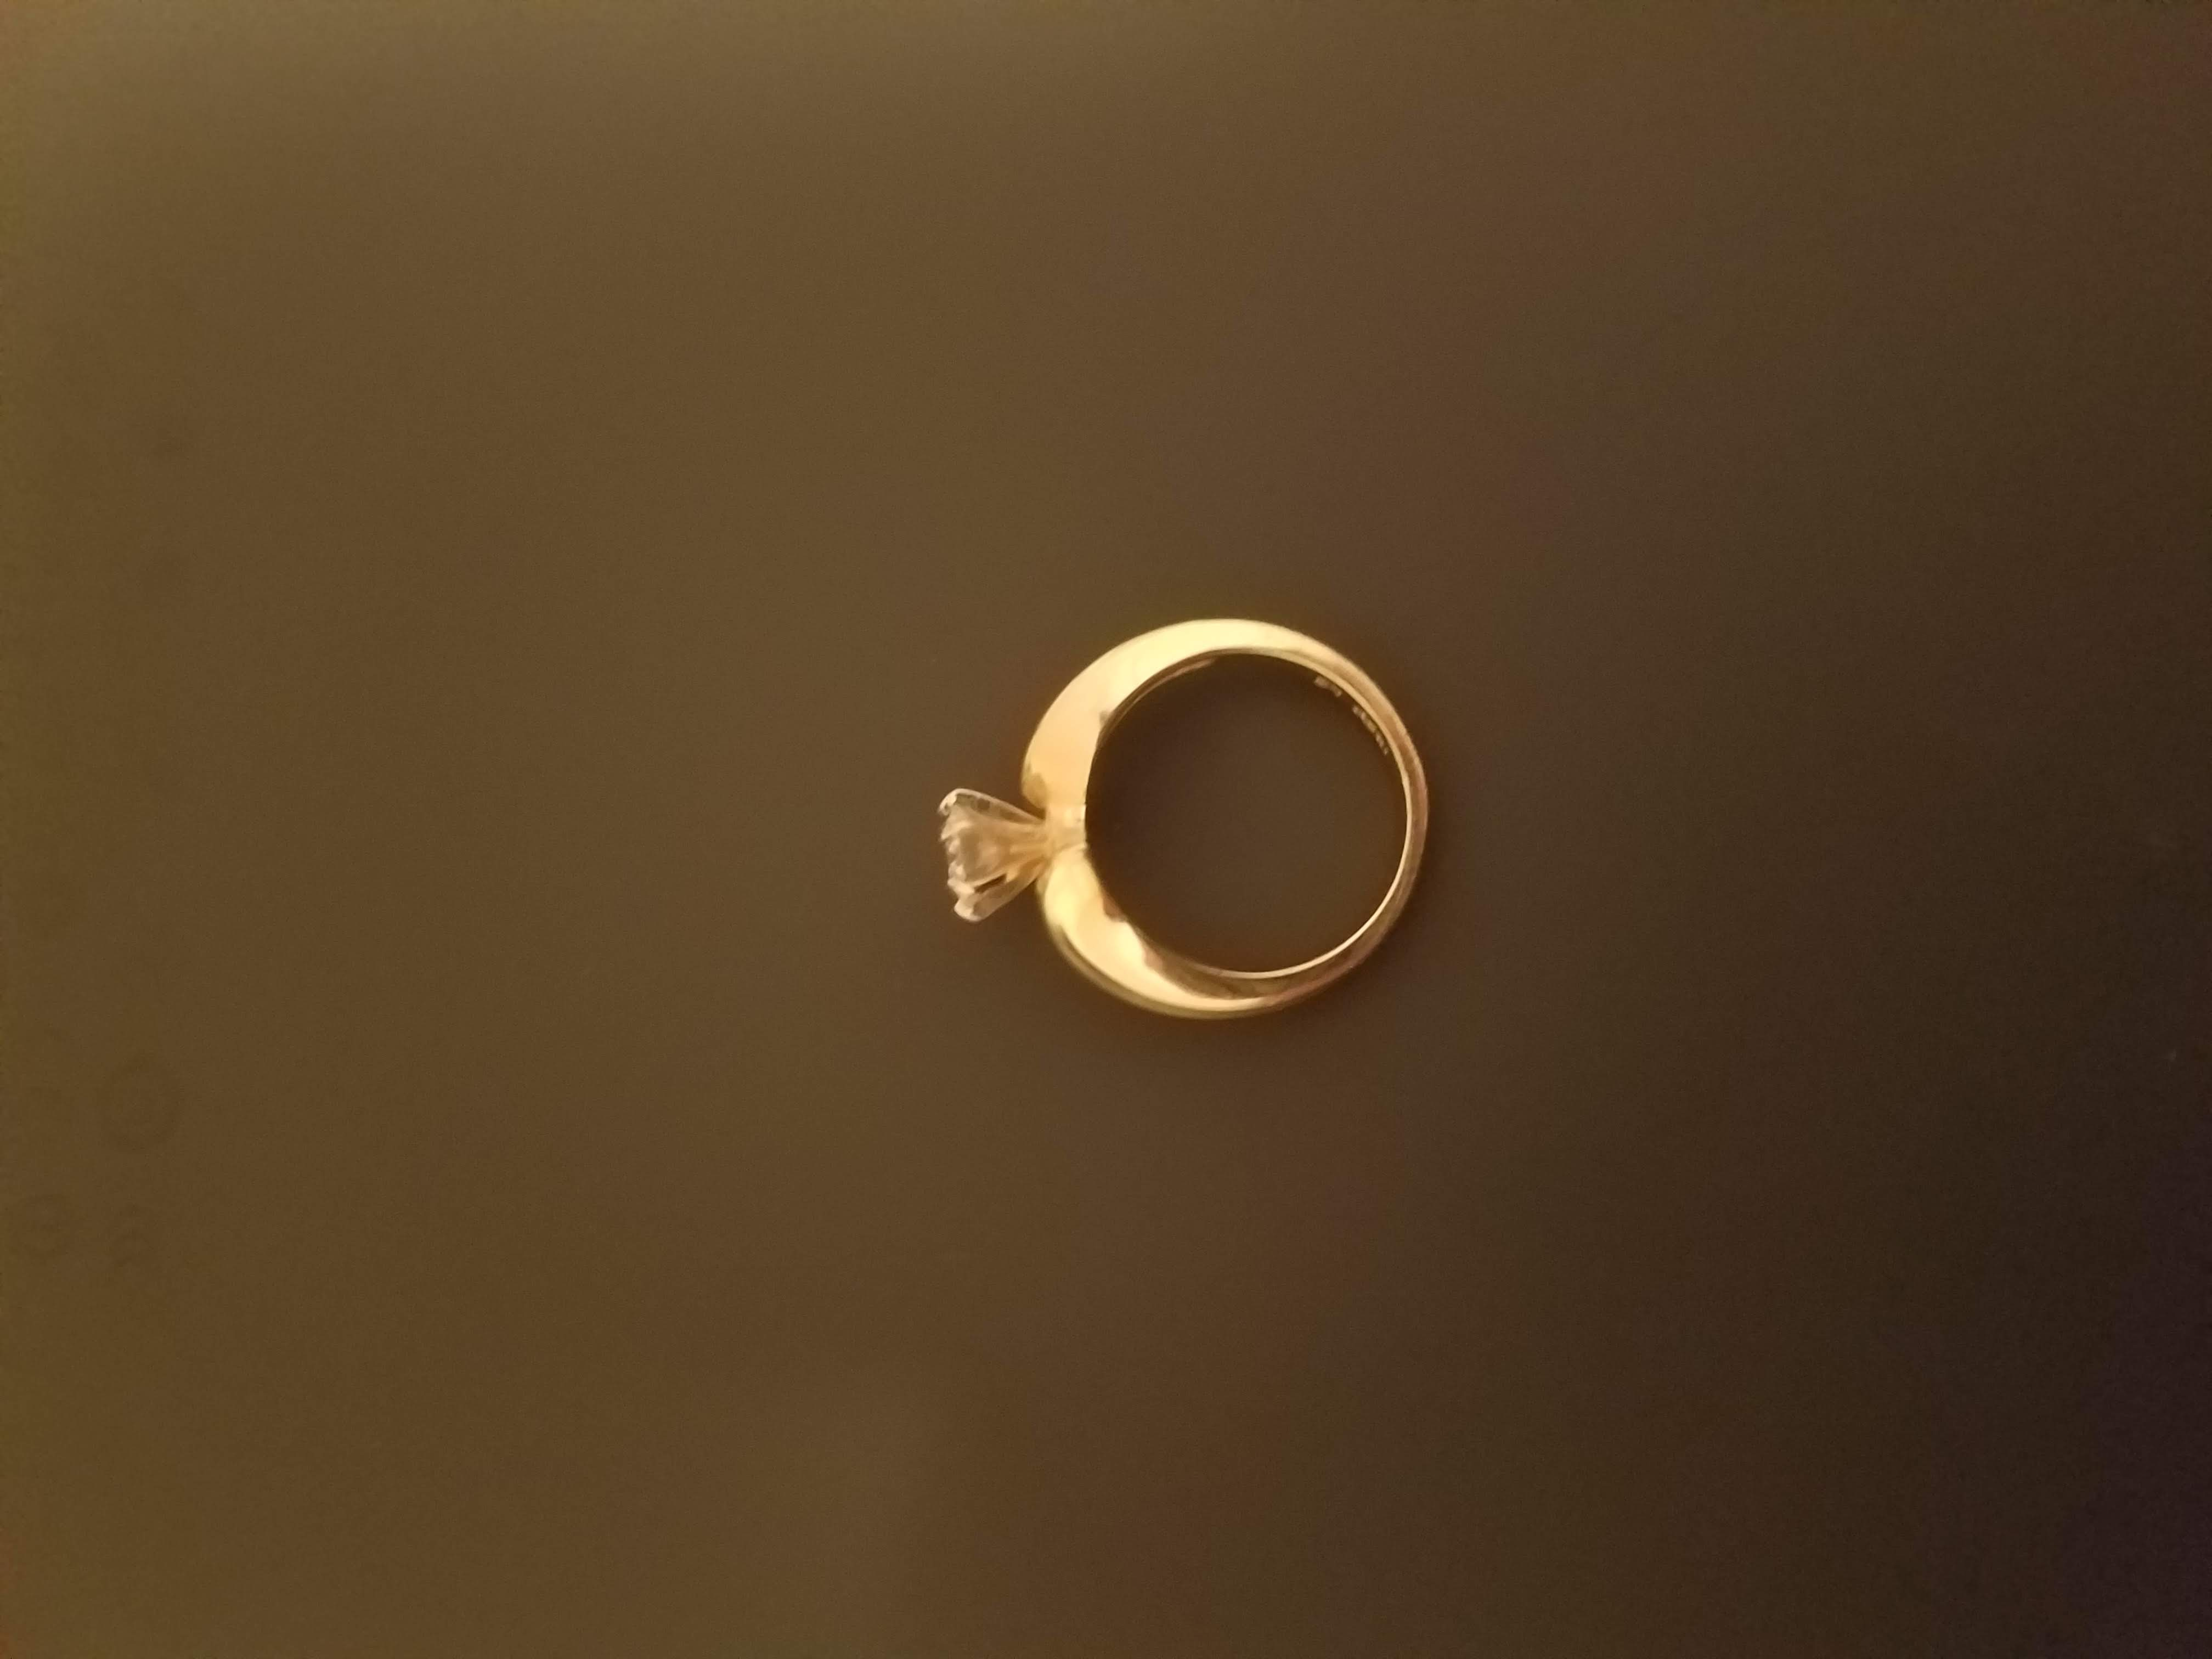 Stunning 14k yellow gold